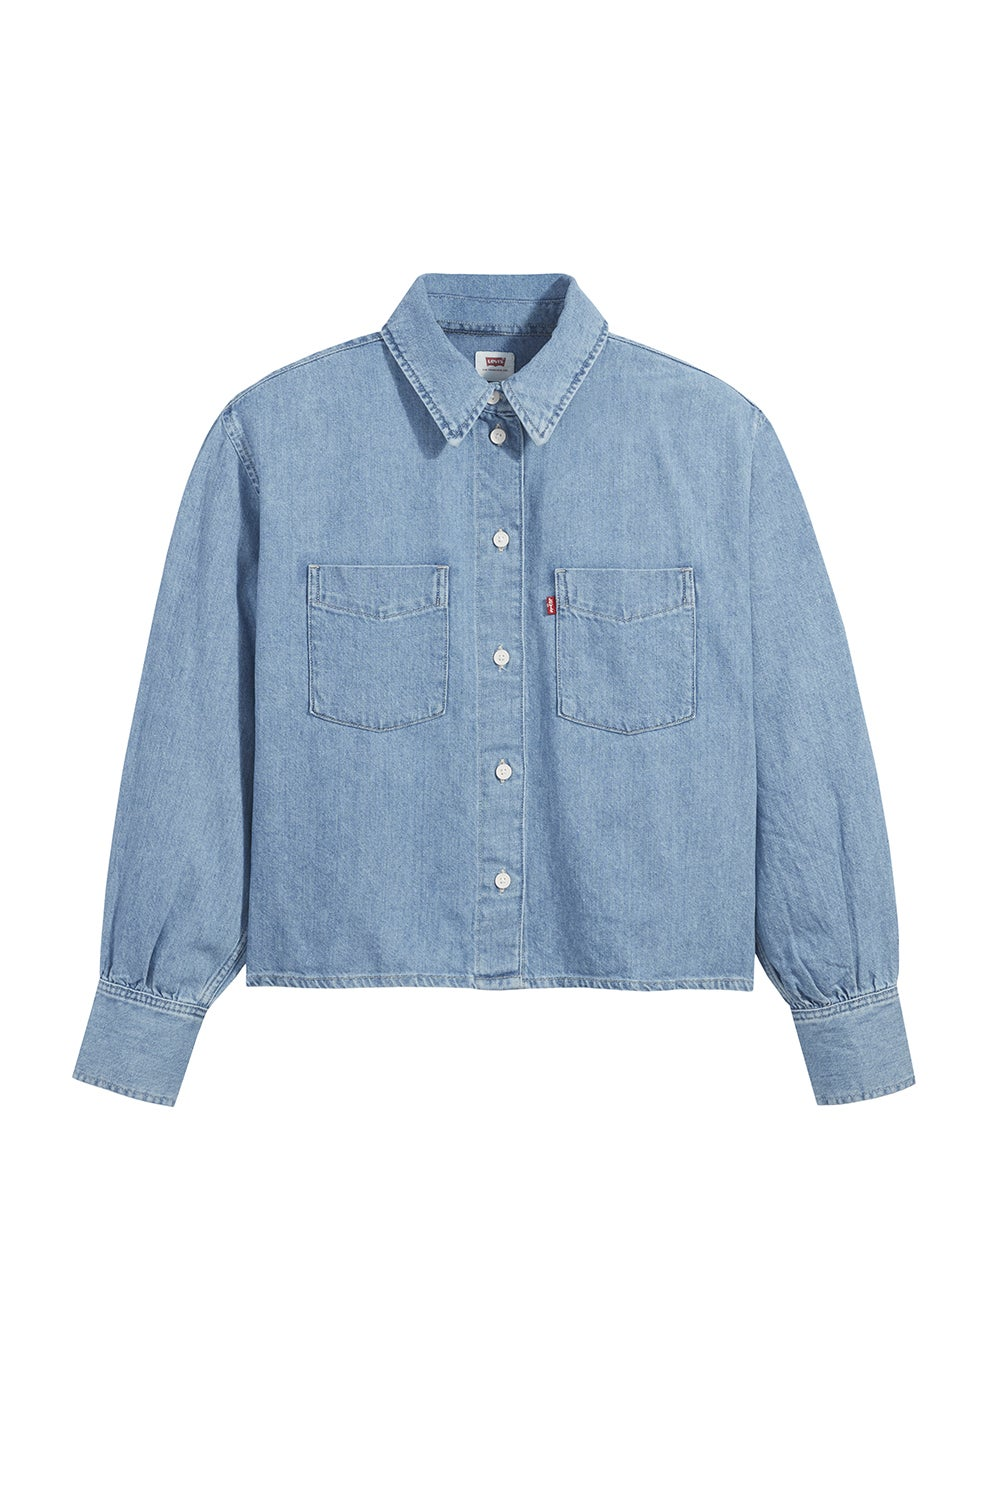 Levi's Zoey Pleat Utility Shirt Stay Cool